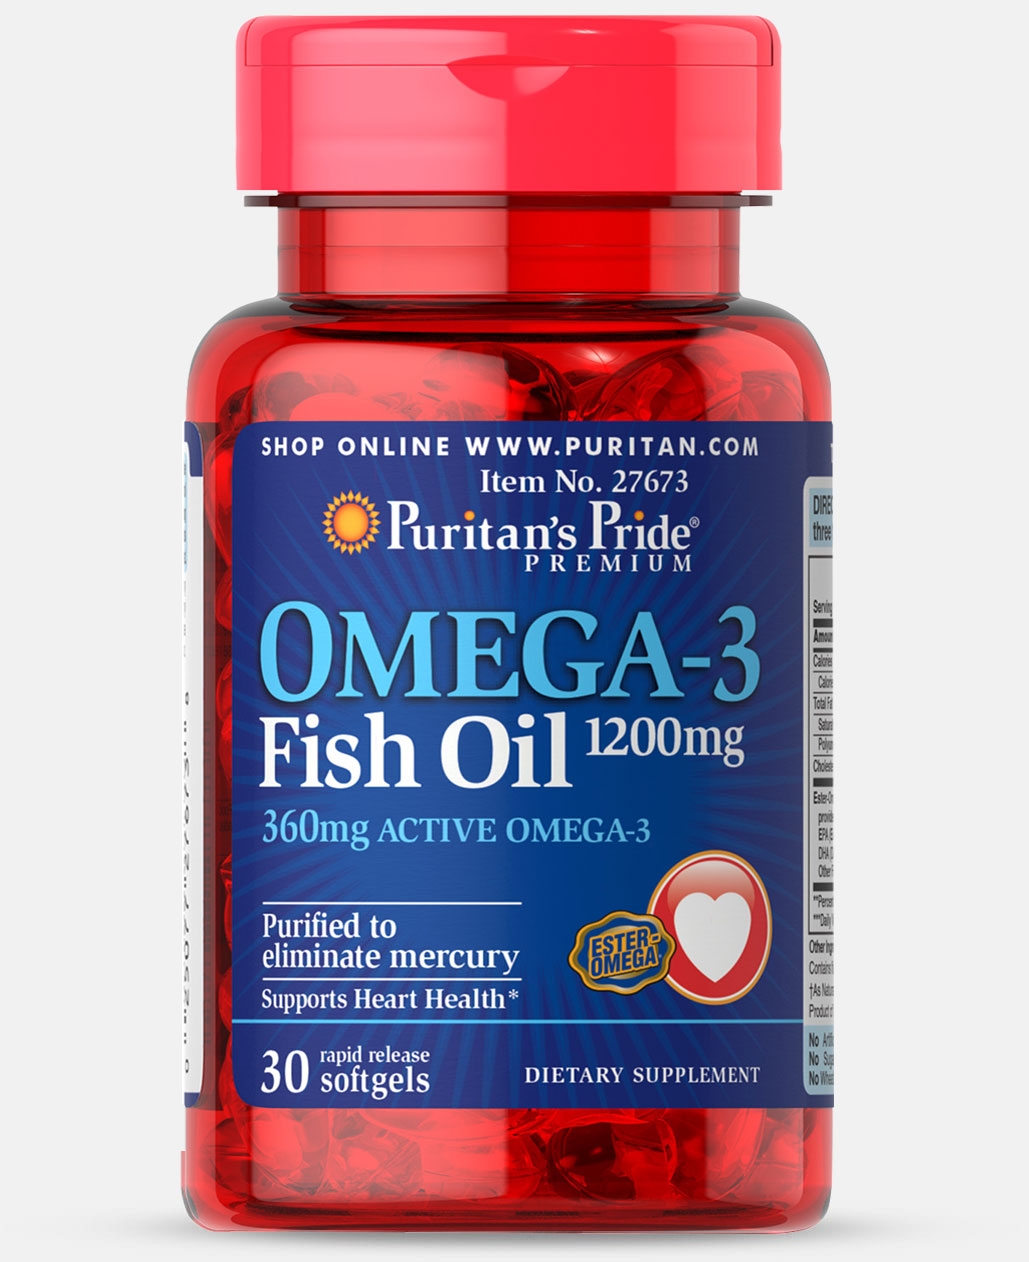 Omega 3 Fish Oil 1200 mg (360 mg Active Omega-3) Trial Size